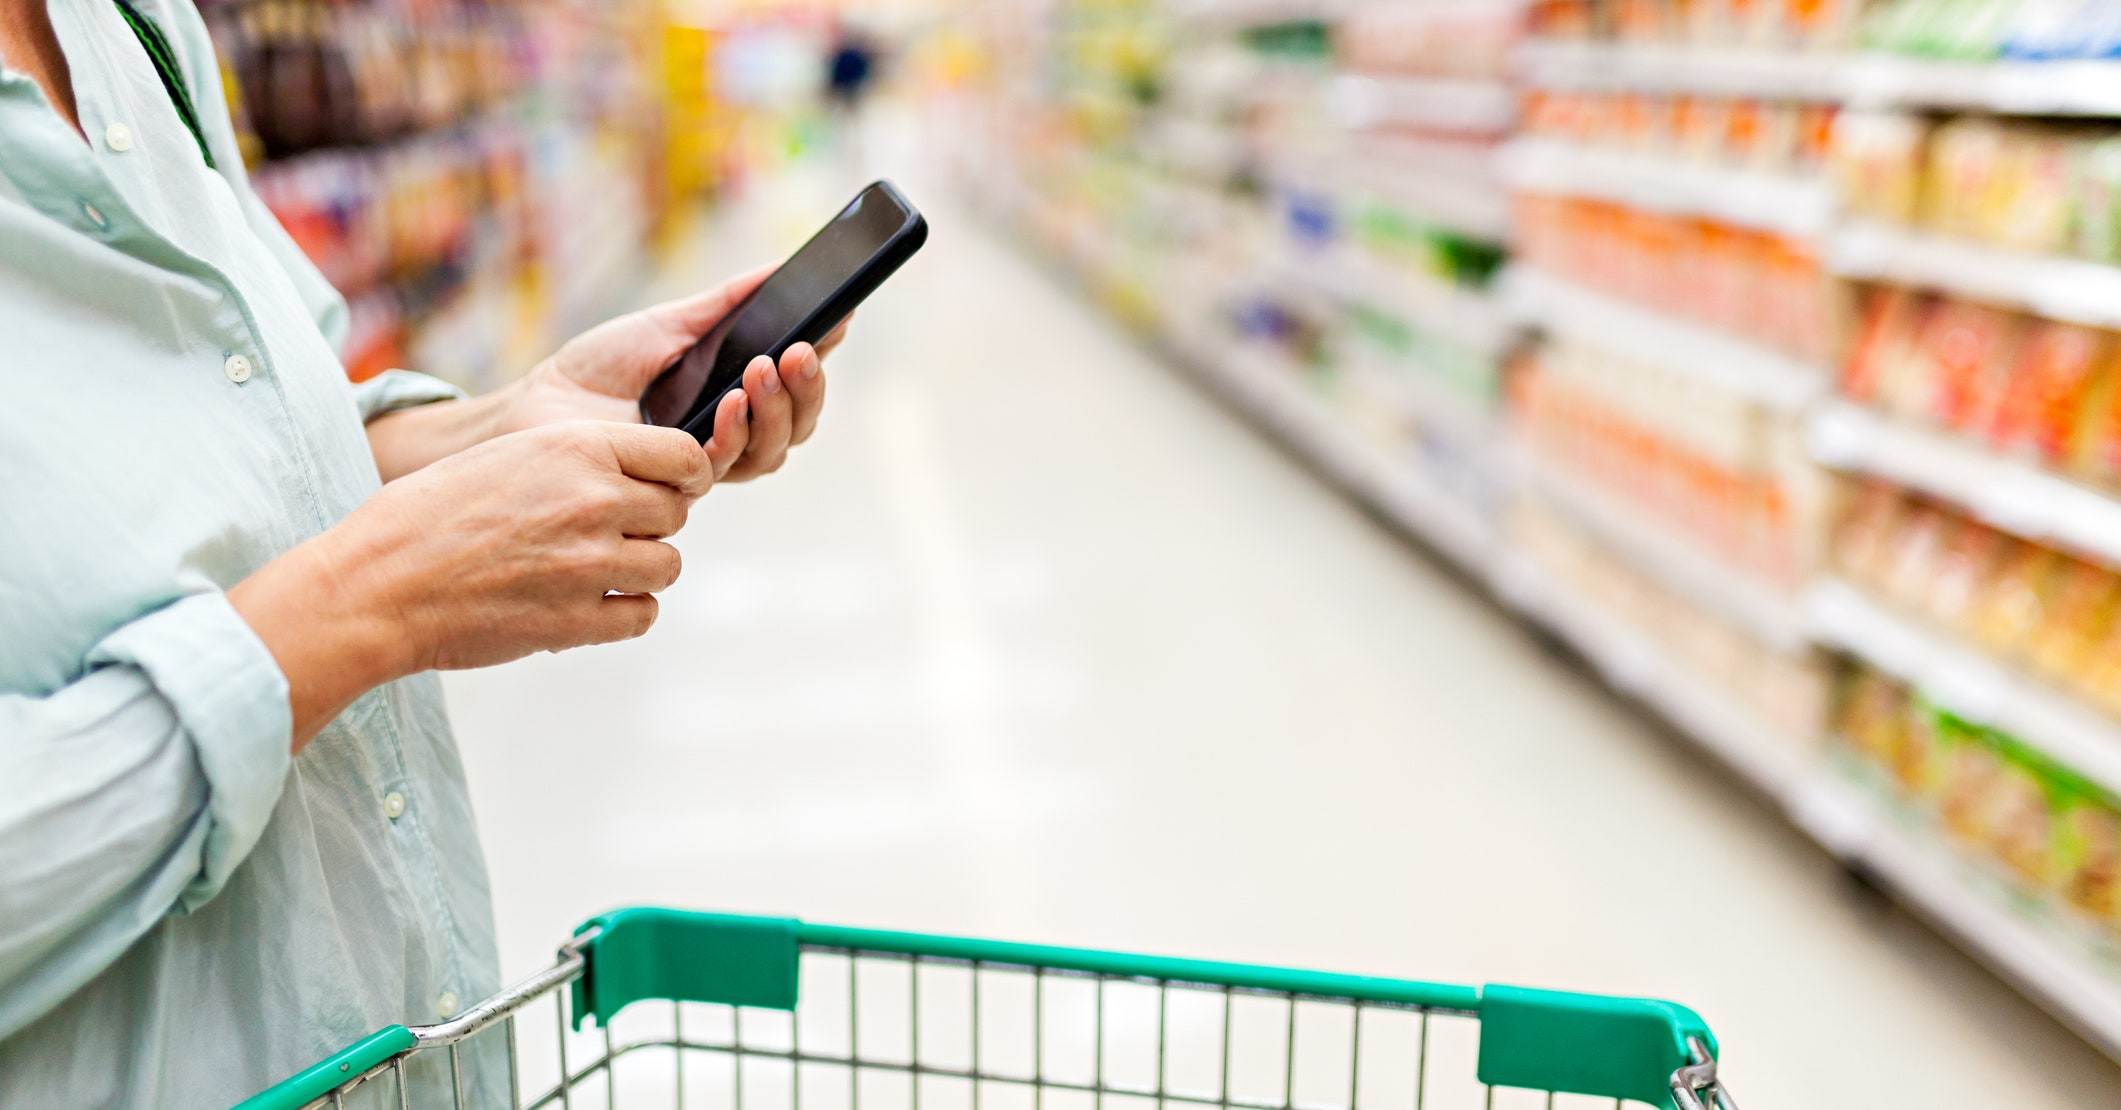 Food Stamps Program - How to Order on a Cell Phone